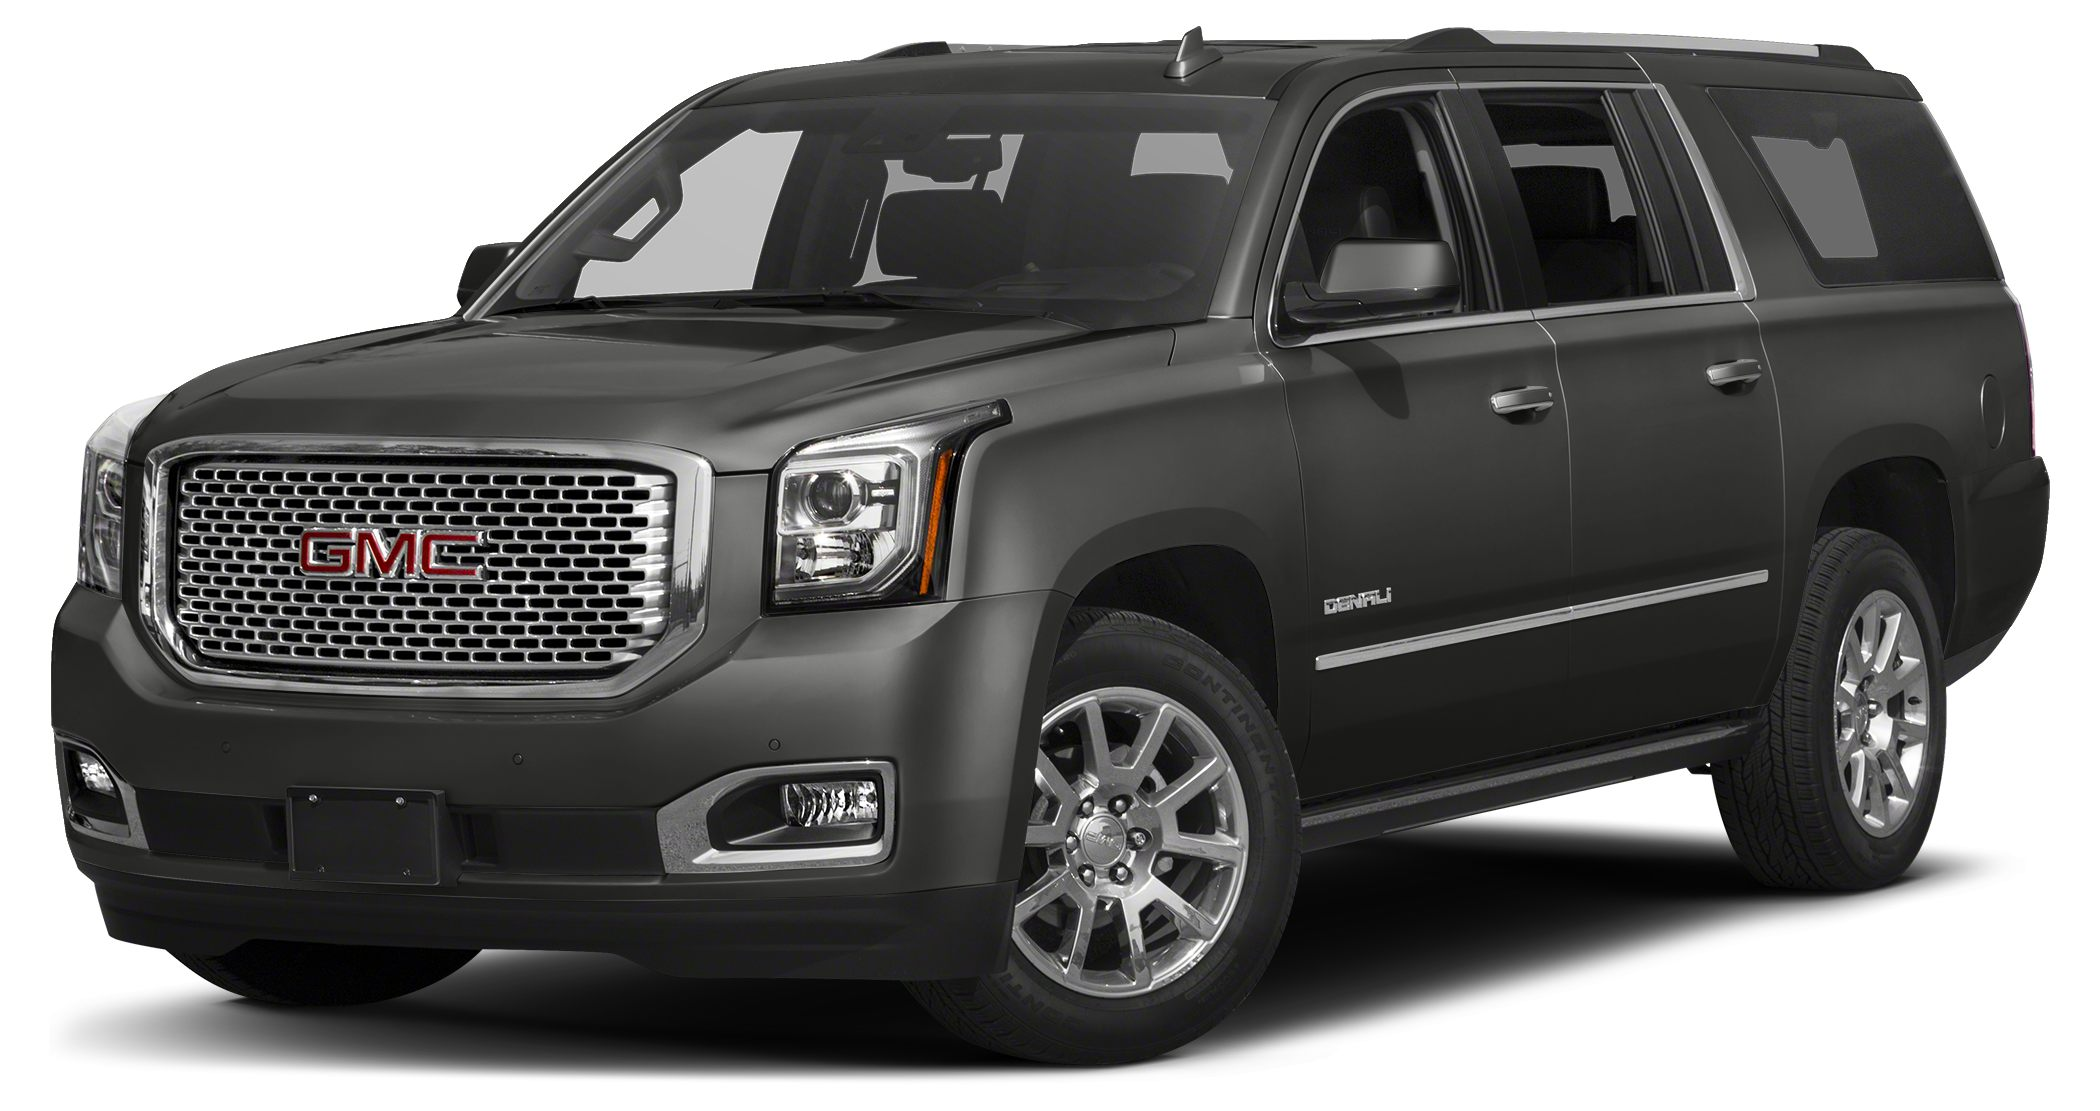 2017 GMC Yukon XL Denali Thank you for visiting another one of Conley Buick GMCs exclusive listin